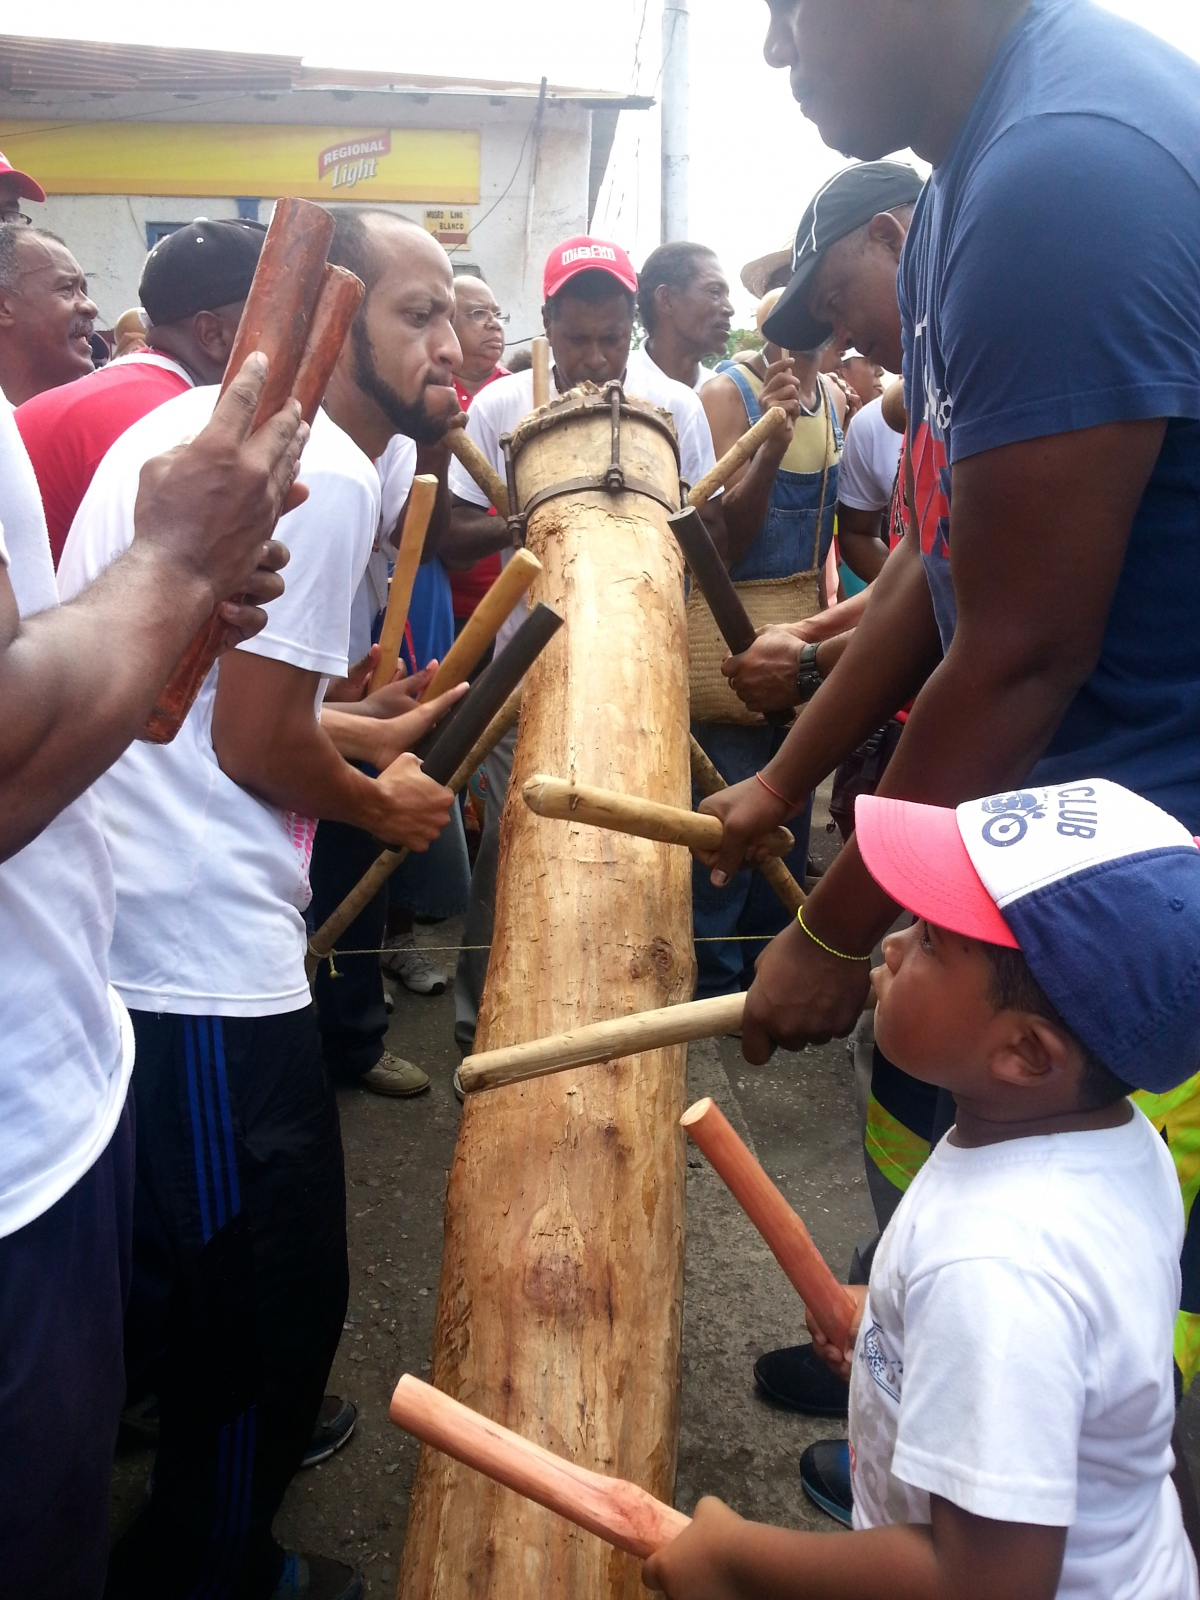 On the corner of the main square opposite of Curiepe's Cultural House, drummers play El Mina and Culo é paya which are characteristic of this celebration (Jeanette Charles/Venezuela Analysis).